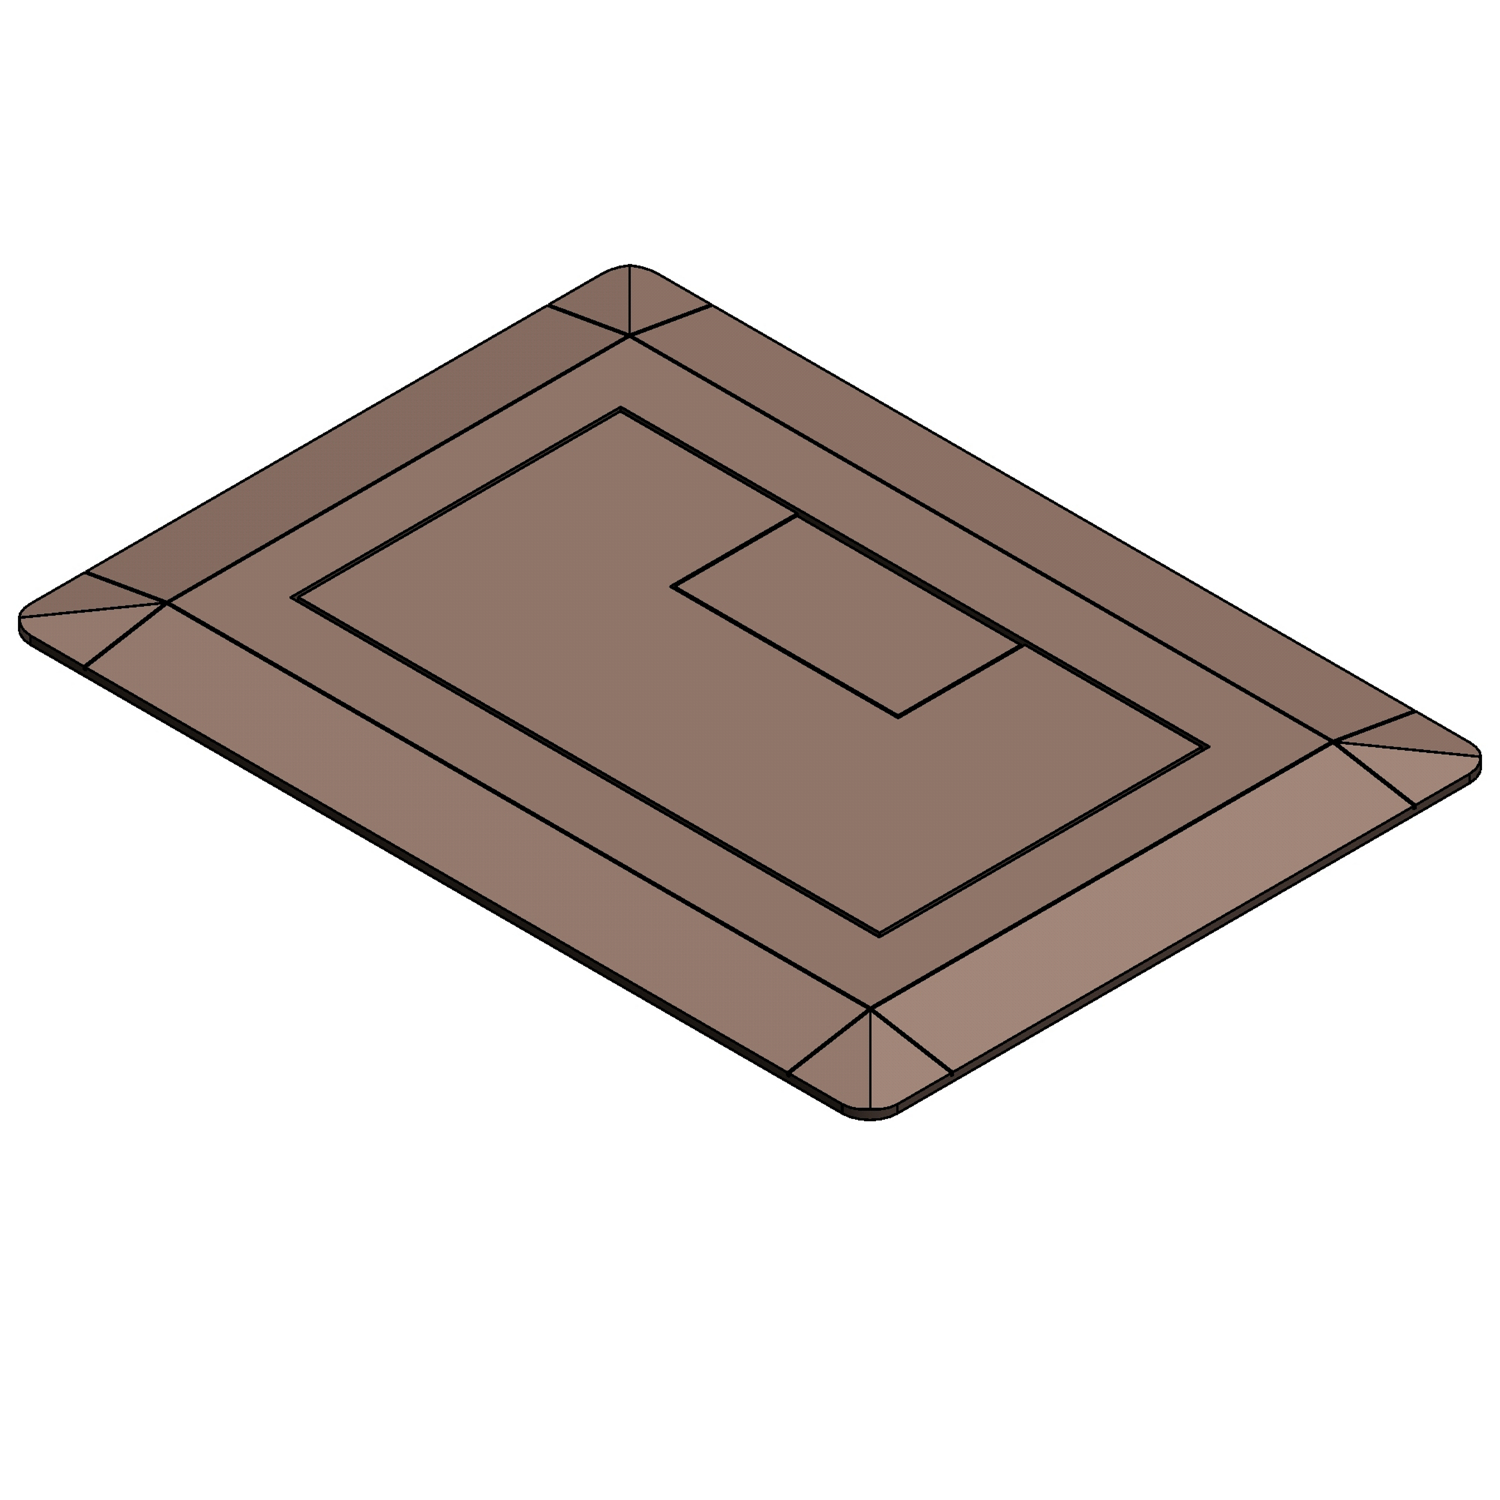 Carlon E9761C Floor Box Cover, 5 in L x 7.13 in W, Thermoplastic